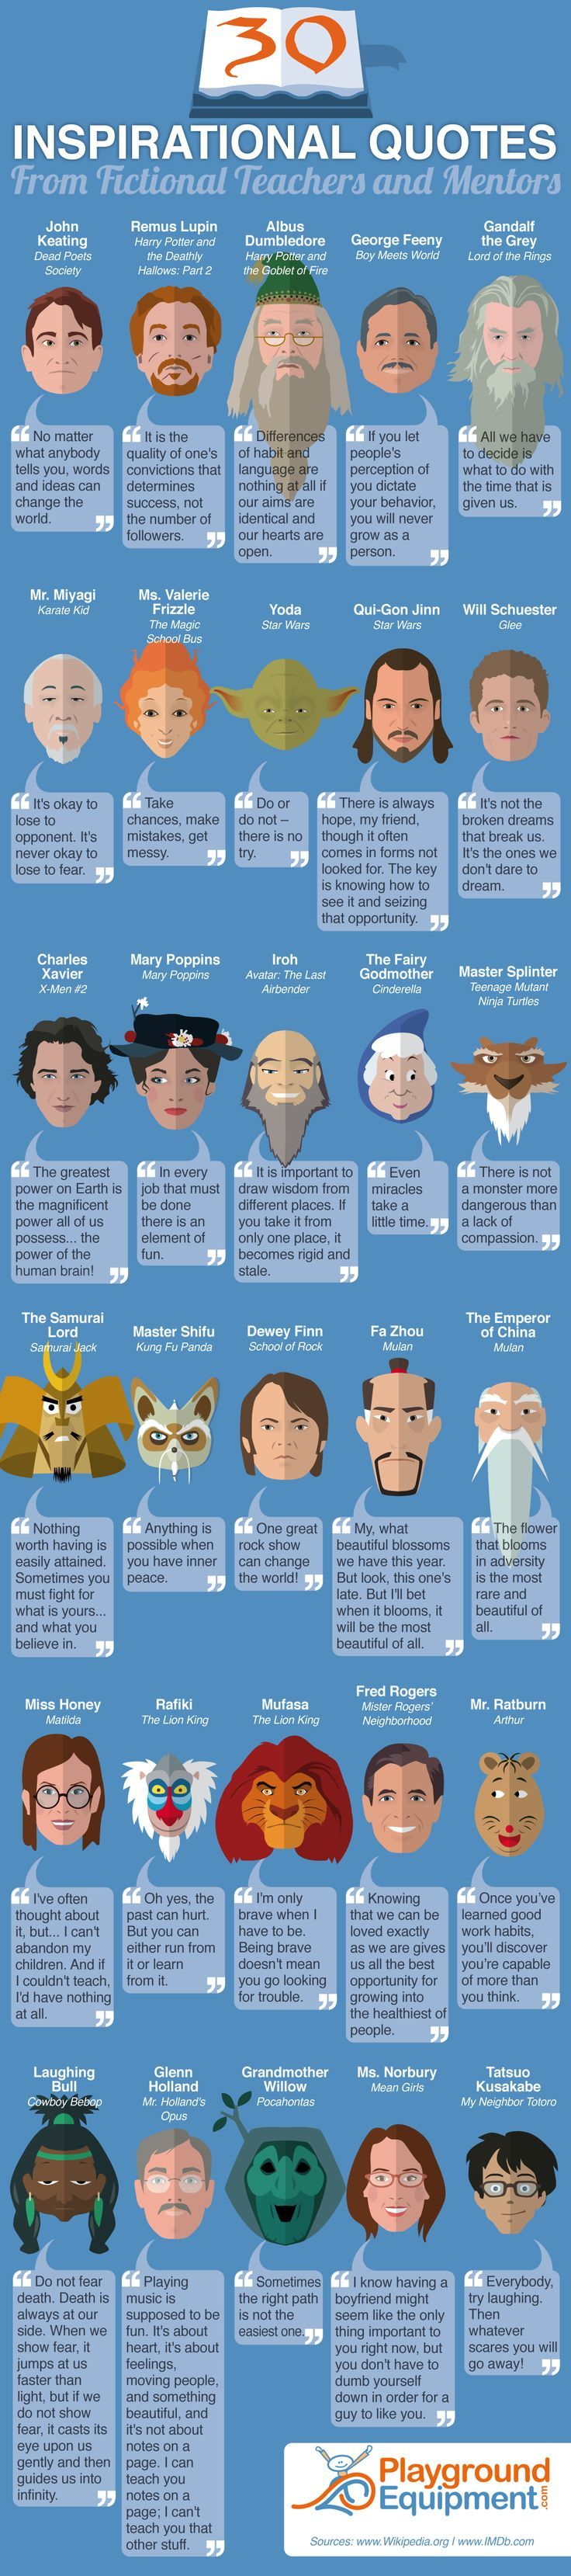 30 Inspirational Quotes from Fictional Teachers and Mentors #Infographic #Quotes #Education: